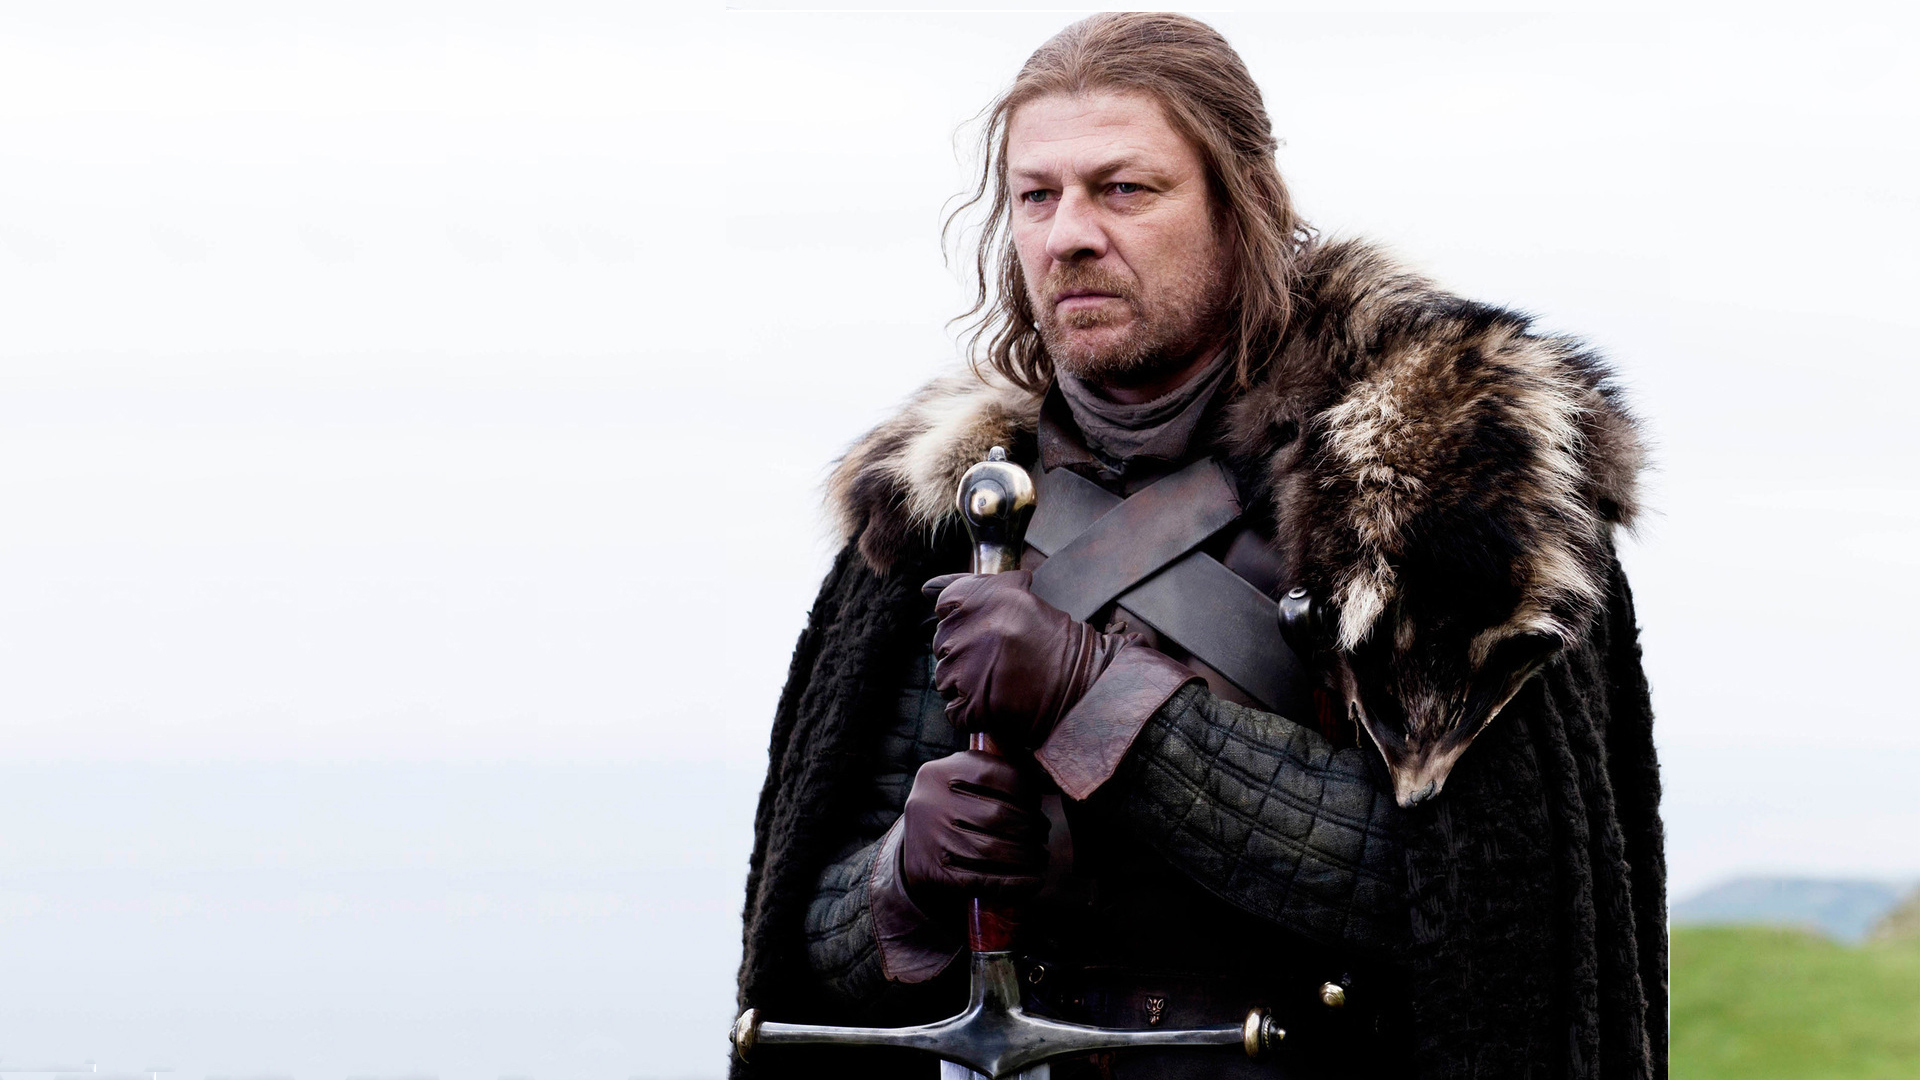 Eddard Stark (Sean Bean) in the movie Game of Thrones (Game of Thrones)